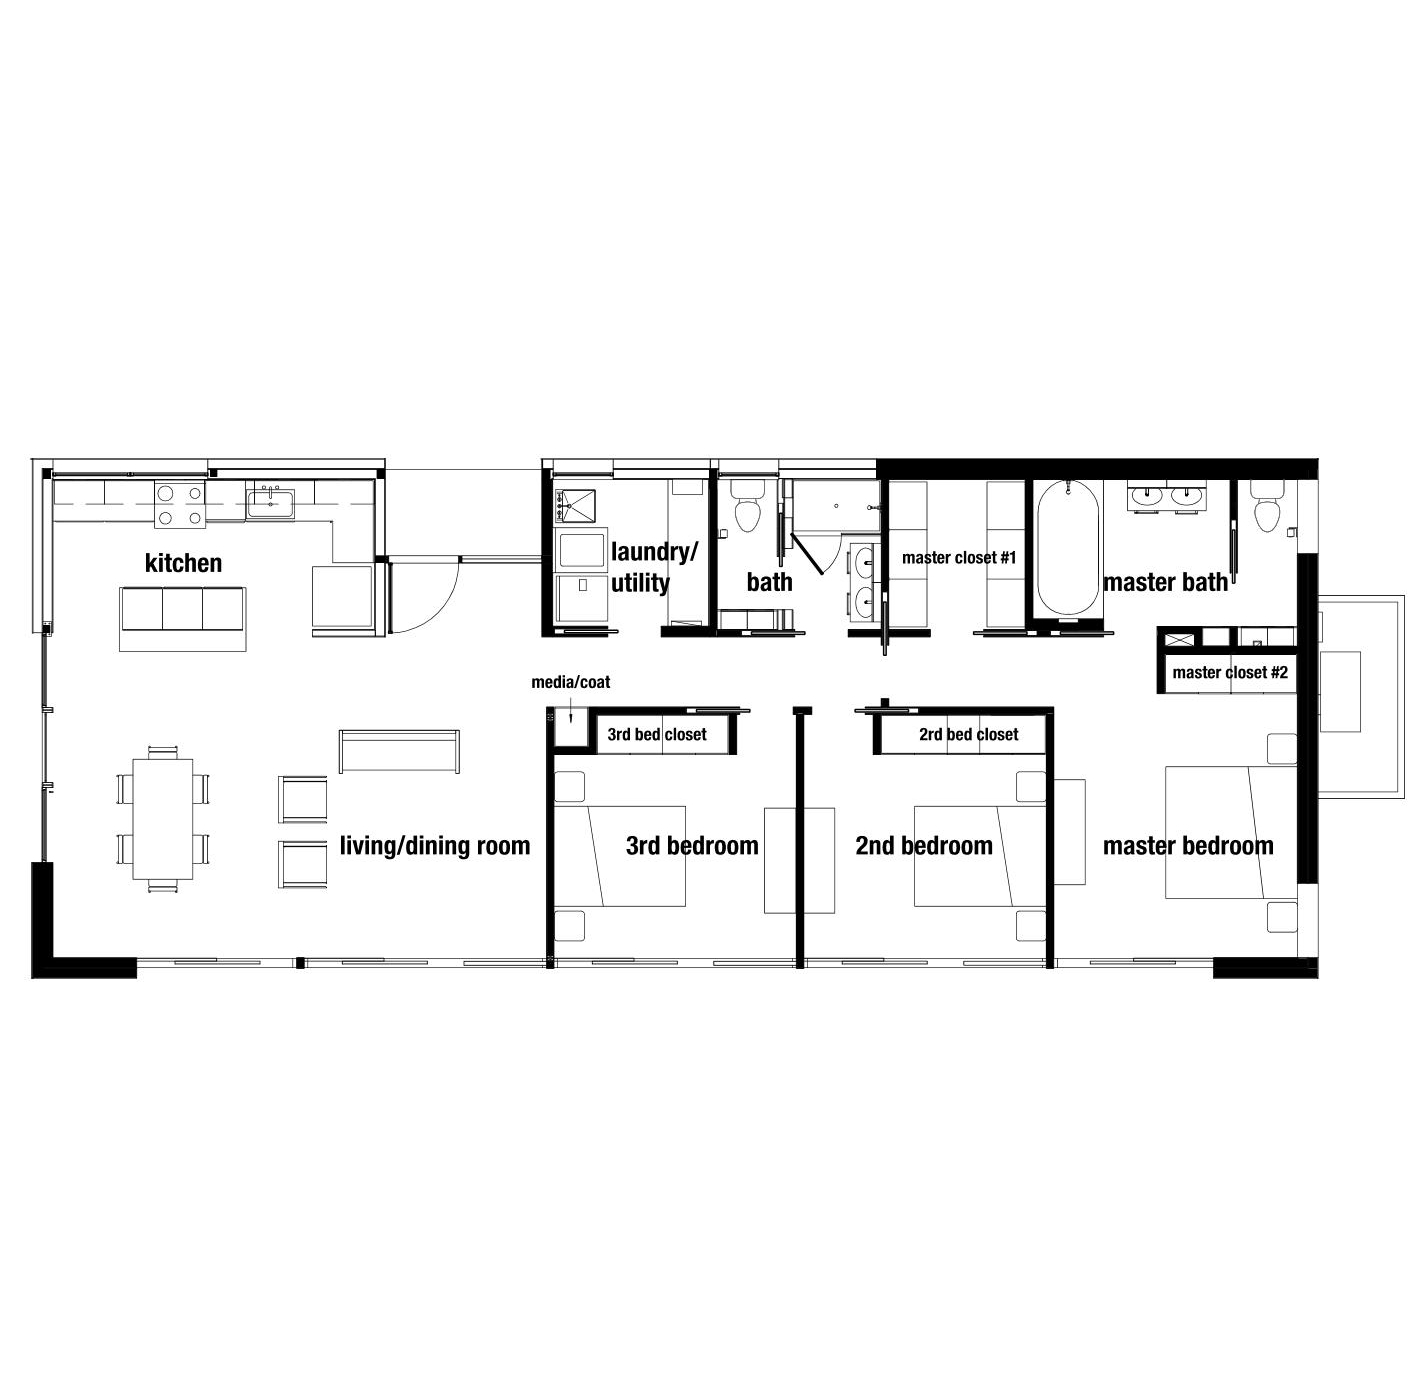 """OVERALL DIMENSION: 64'-4"""" x 26'-0""""   OVERALL SQ. FT.: approx. 1669 sq. ft.   LIVING & DINING: 24'-8"""" x 16'-0""""   KITCHEN: 16'-1"""" x 7'-10""""   PORCH: 7'-10"""" X 4'-10""""   COAT/MEDIA CLOSET: 6 sq. ft.   MASTER BEDROOM: 12'-6"""" x 12'-2""""   MASTER CLOSET: 53 sq. ft.   MASTER BATHROOM: 101 sq. ft.   MASTER MEDIA CLOSET: 6 sq. ft.   MASTER LINEN CLOSET: 7 sq. ft.   2nd BEDROOM: 12'-2"""" x 9'-9""""   2nd BED CLOSET: 16 sq. ft.   3rd BEDROOM: 12'-1"""" x 9'-9""""   3rd BED CLOSET: 9 sq. ft.   2nd BATHROOM: 61 sq. ft.   LAUNDRY/UTILITY ROOM: 58 sq. ft."""